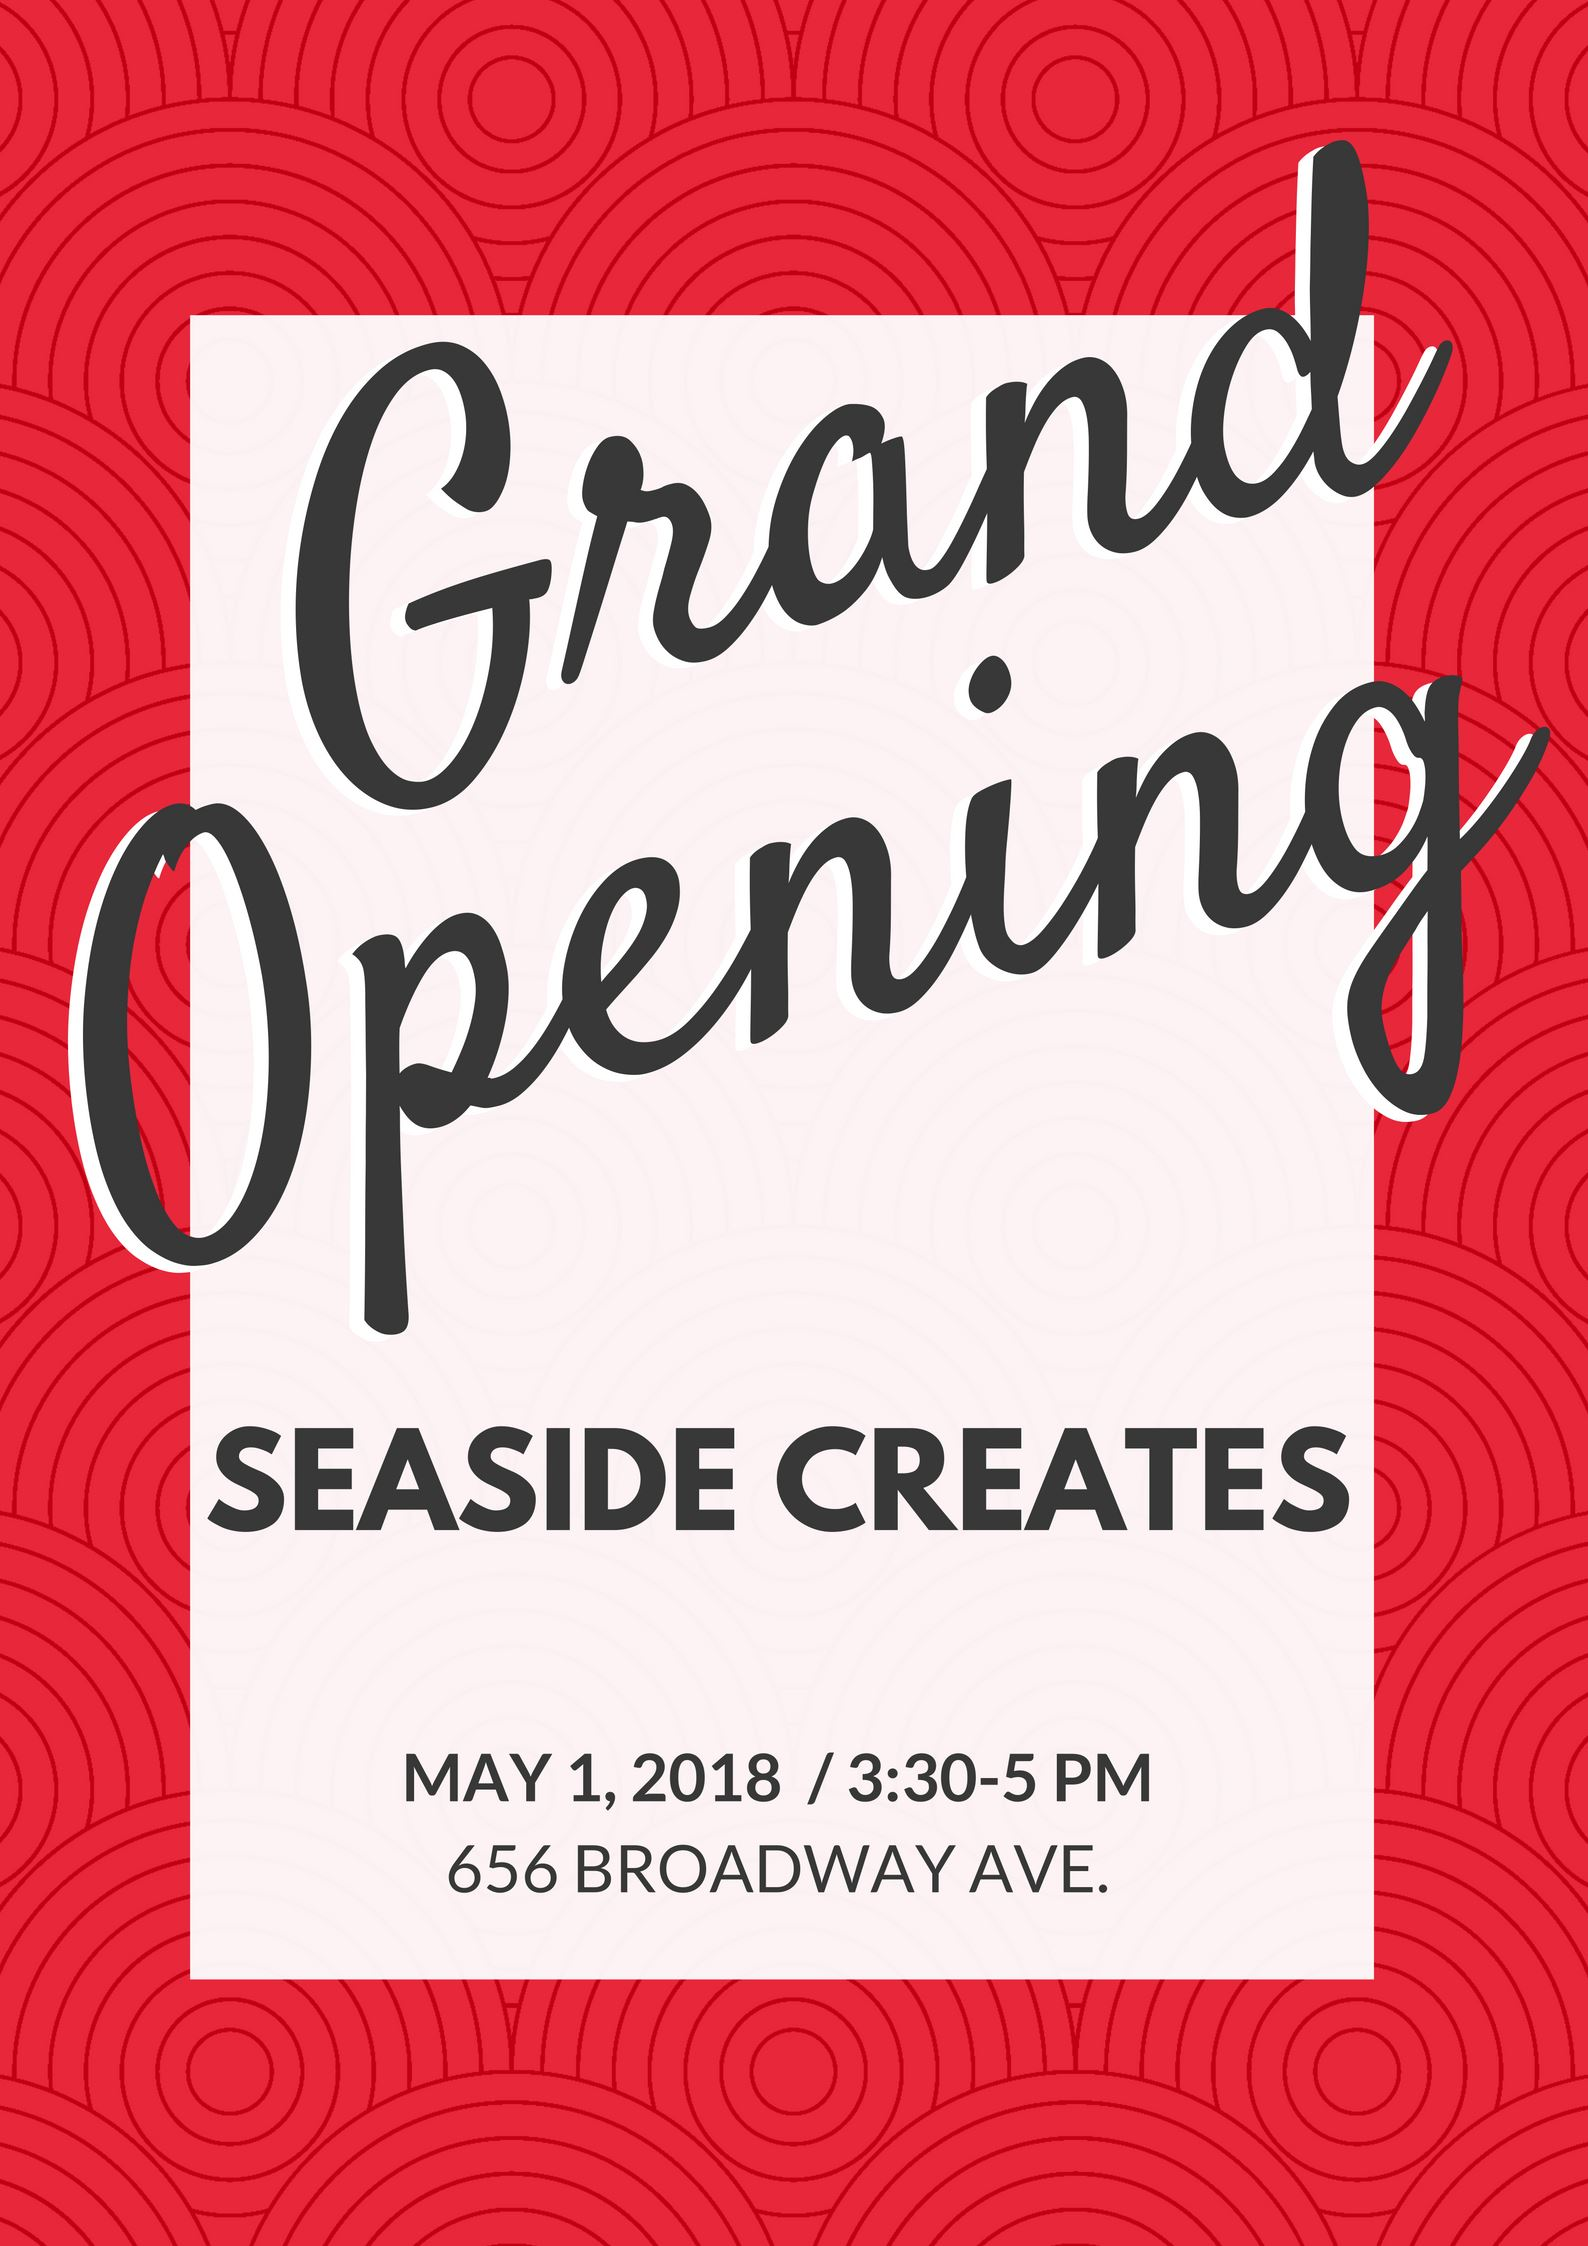 Seaside Creates grand opening flyer